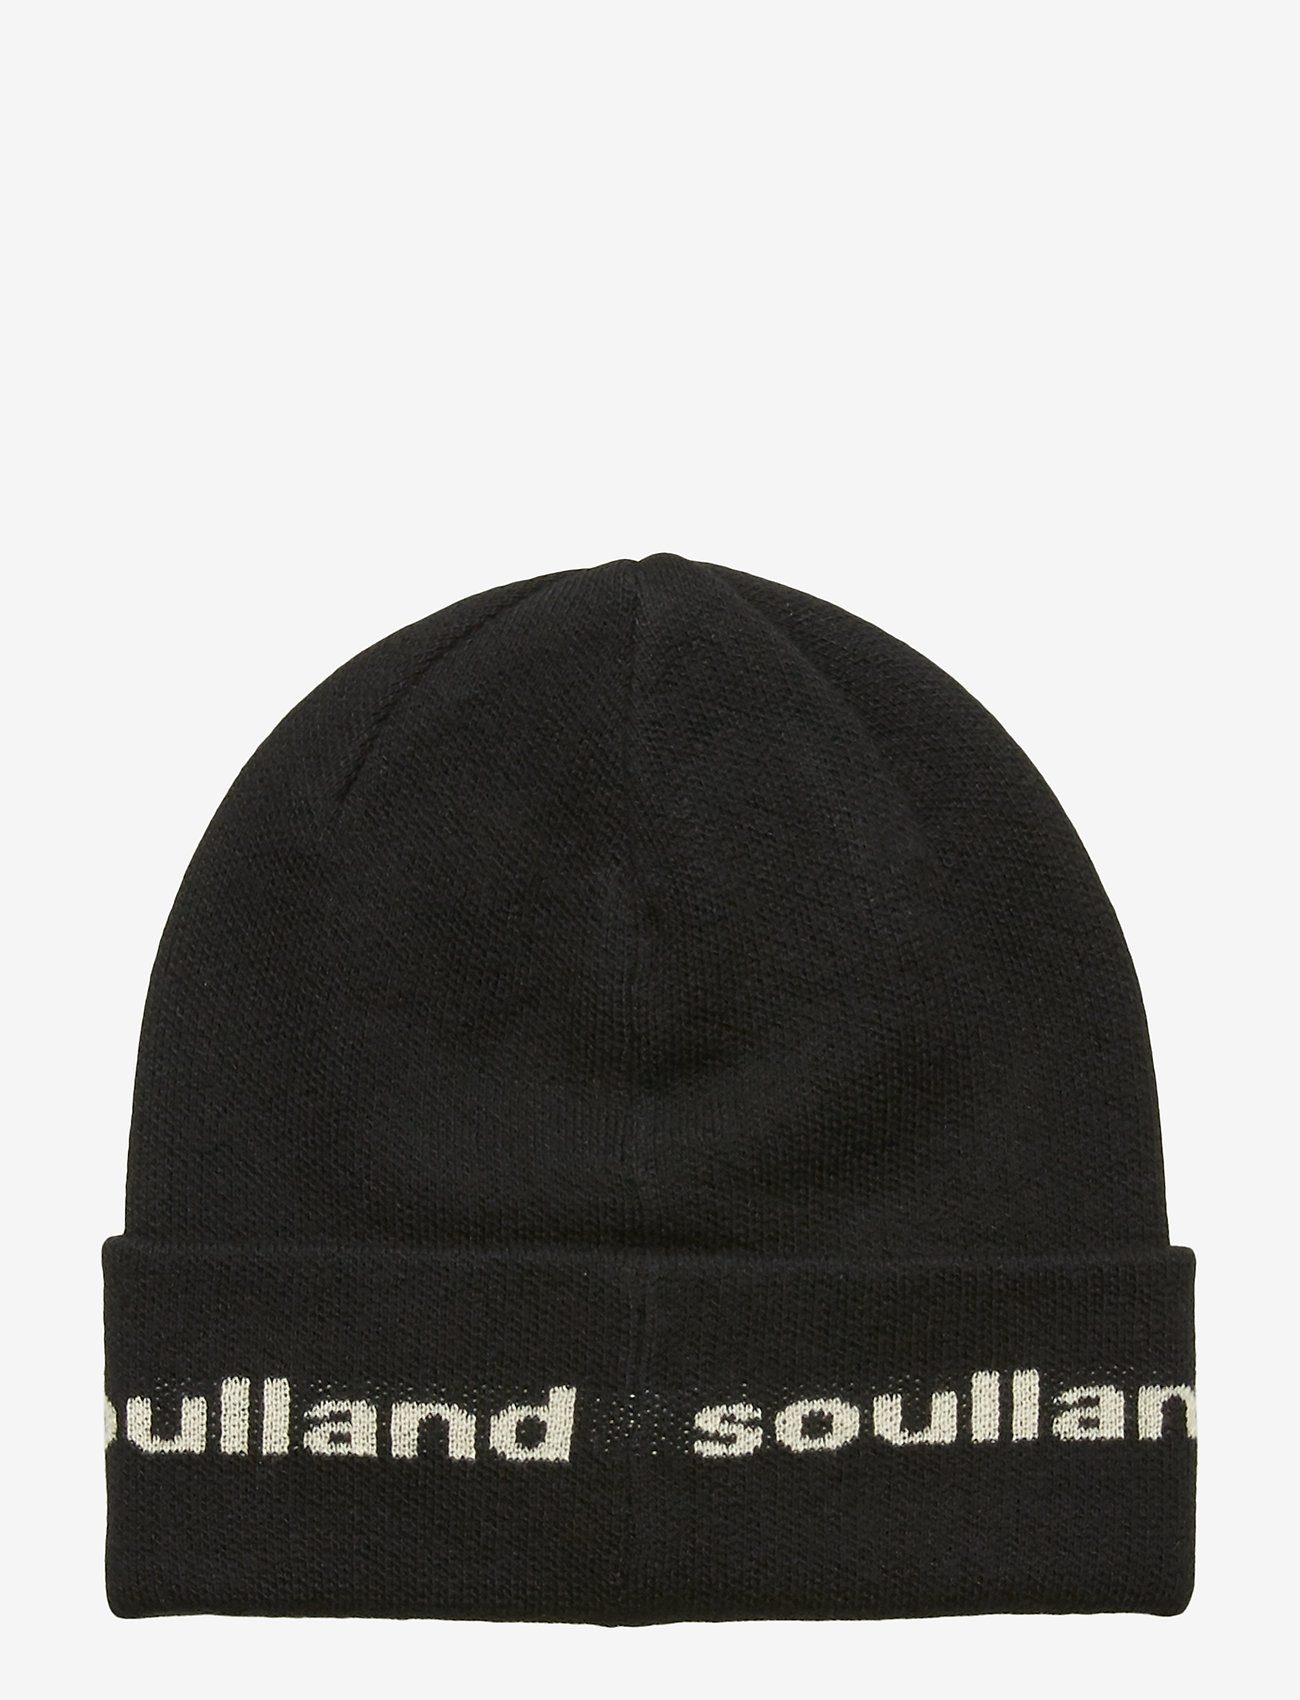 Soulland - YOUNGBANG RECYCLE BEANIE - czapka - black - 1